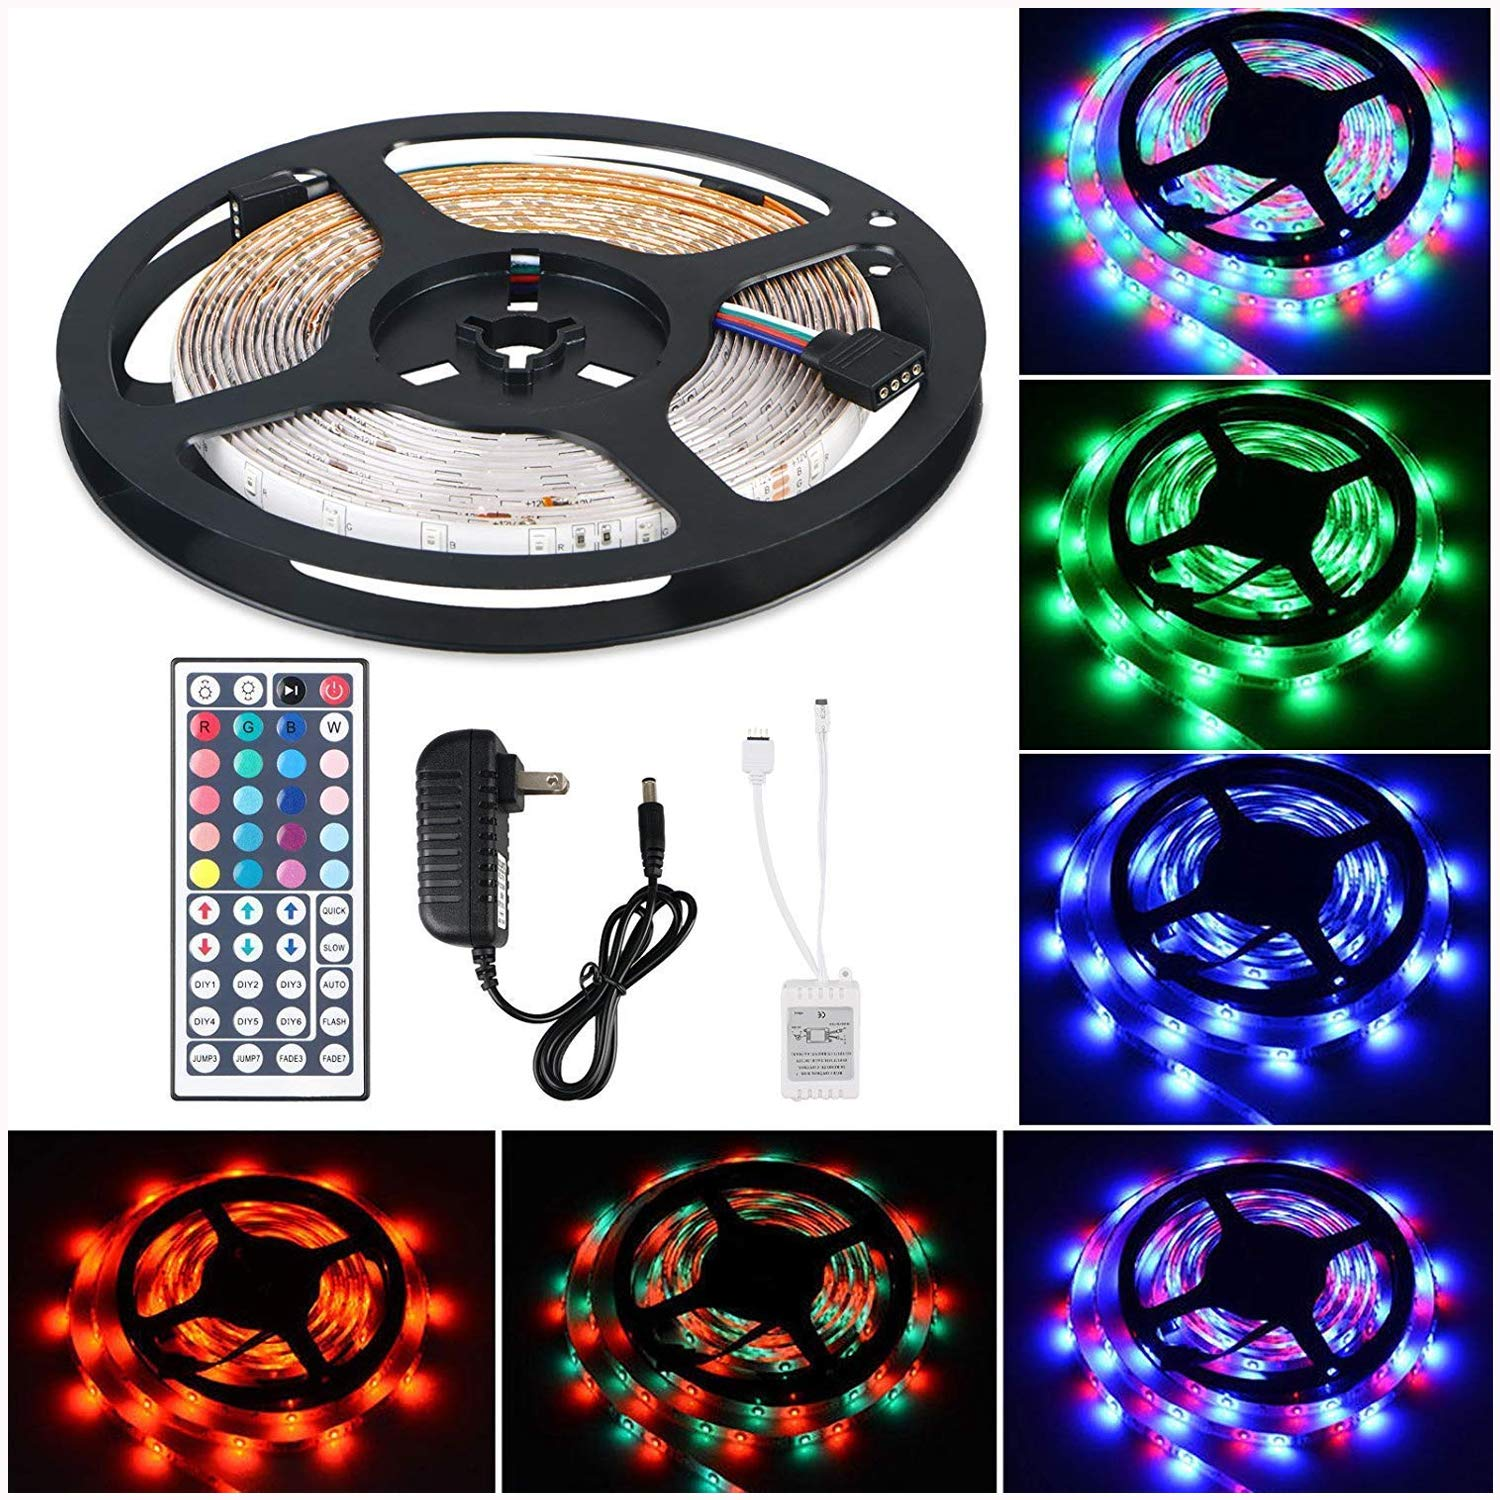 Linkstyle 16 4ft Led Rope Lights 300 Tape Light Color Changing Rgb Strip 44key Remote Controller And 12v Power Supply For Diy Bedroom